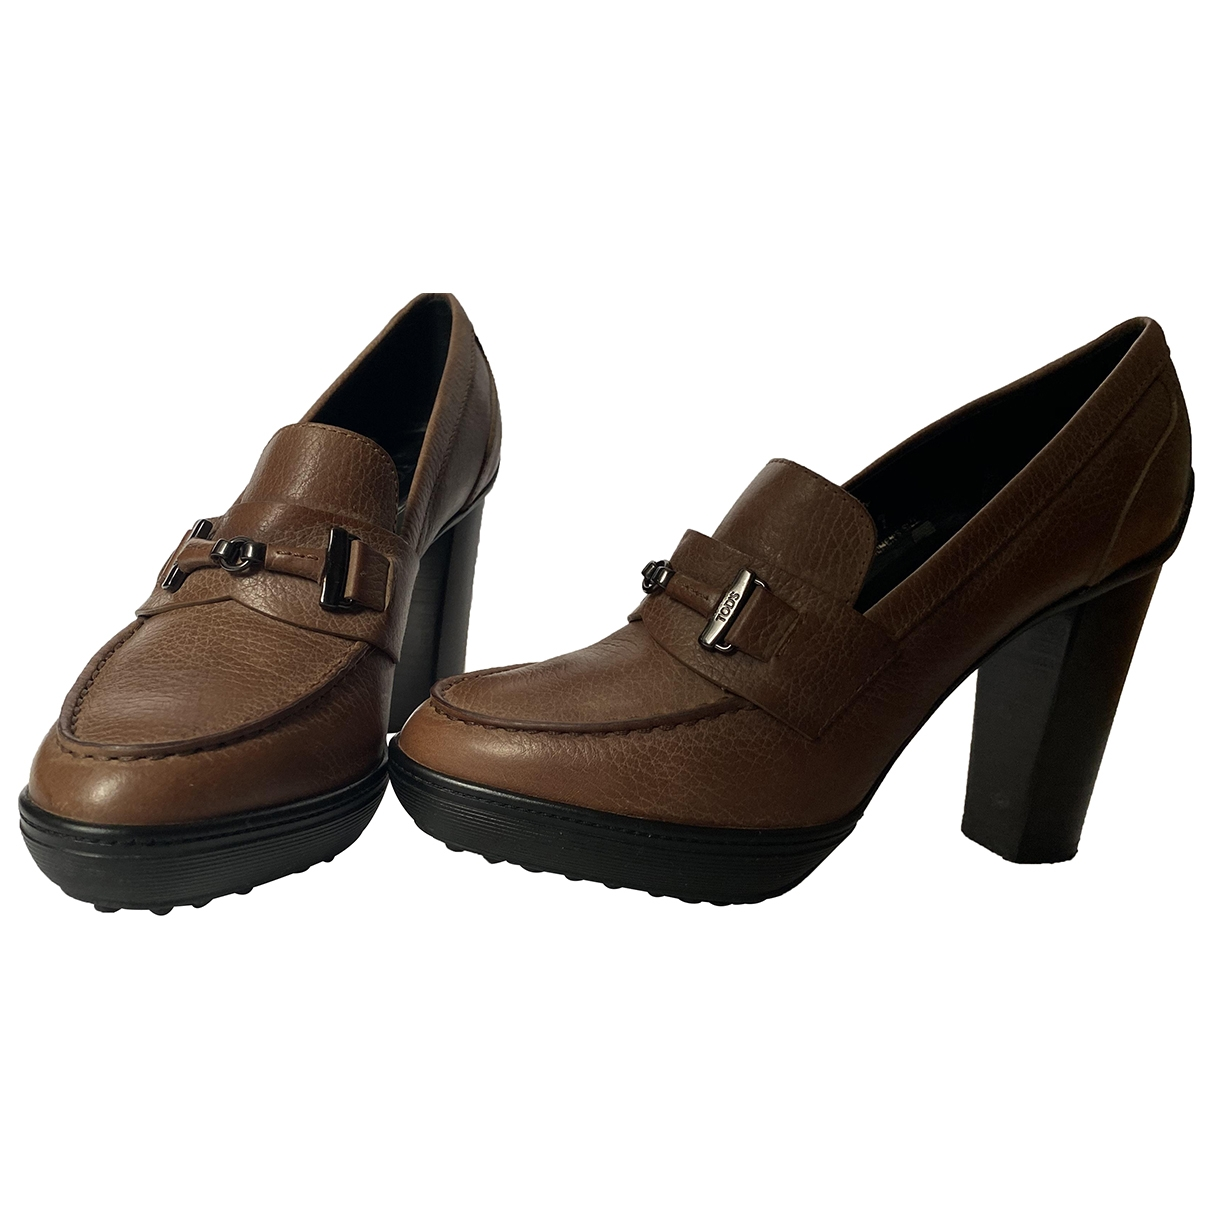 Tod's \N Brown Leather Heels for Women 37 EU